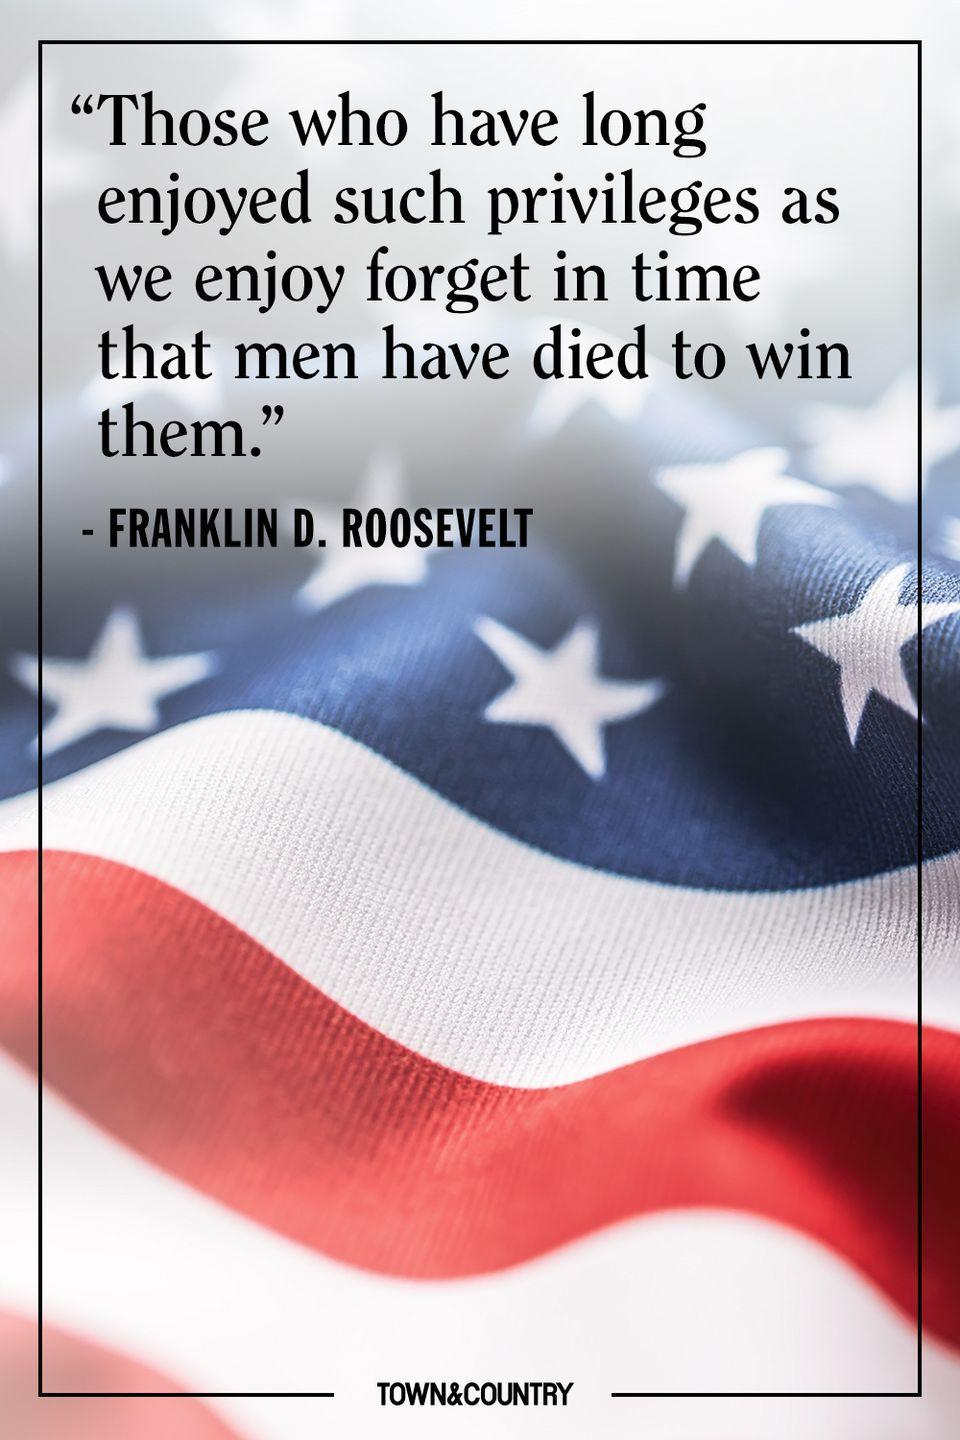 "<p>""Those who have long enjoyed such privileges as we enjoy forget in time that men have died to win them.""</p><p>– Franklin D. Roosevelt</p>"